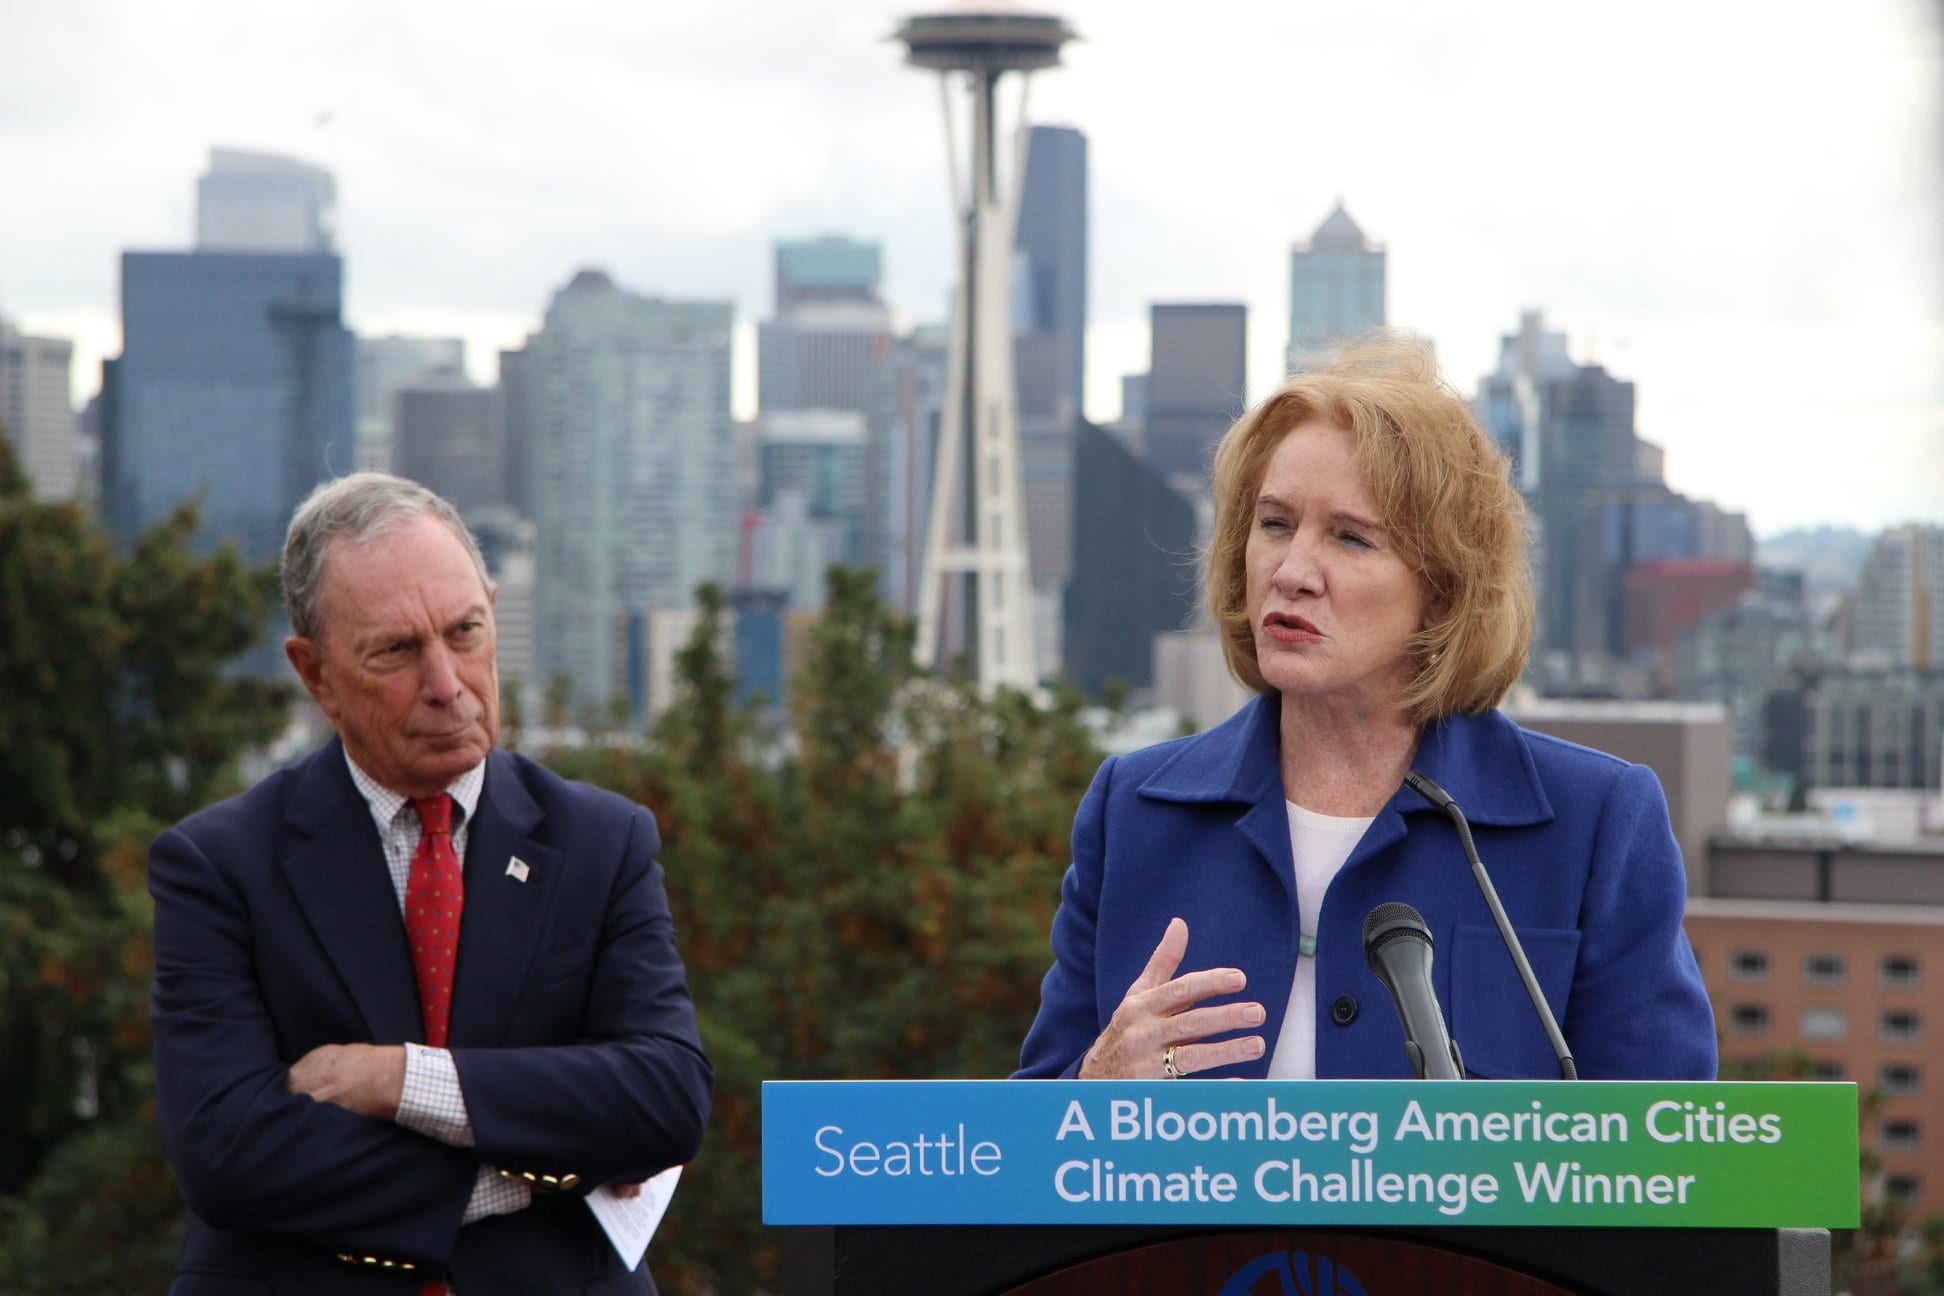 One year in, what's your Jenny Durkan Capitol Hill approval rating?